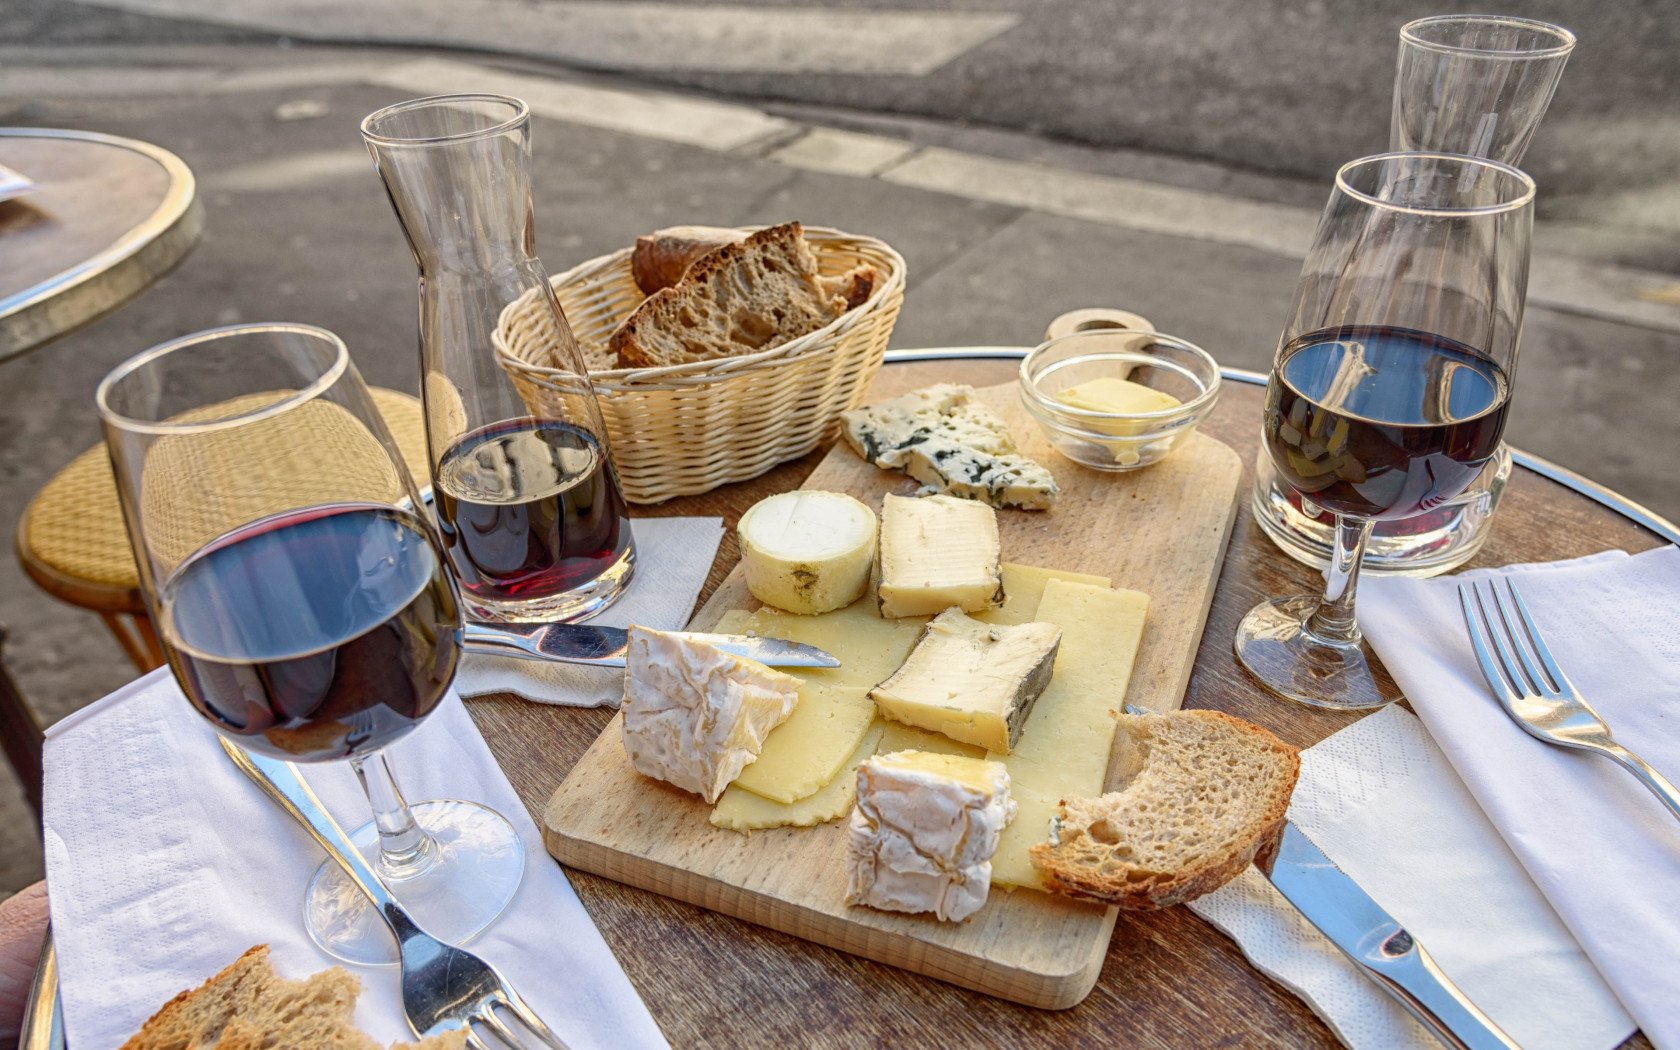 Cheese, wine and bread. Good food and drink wallpaper 1680x1050